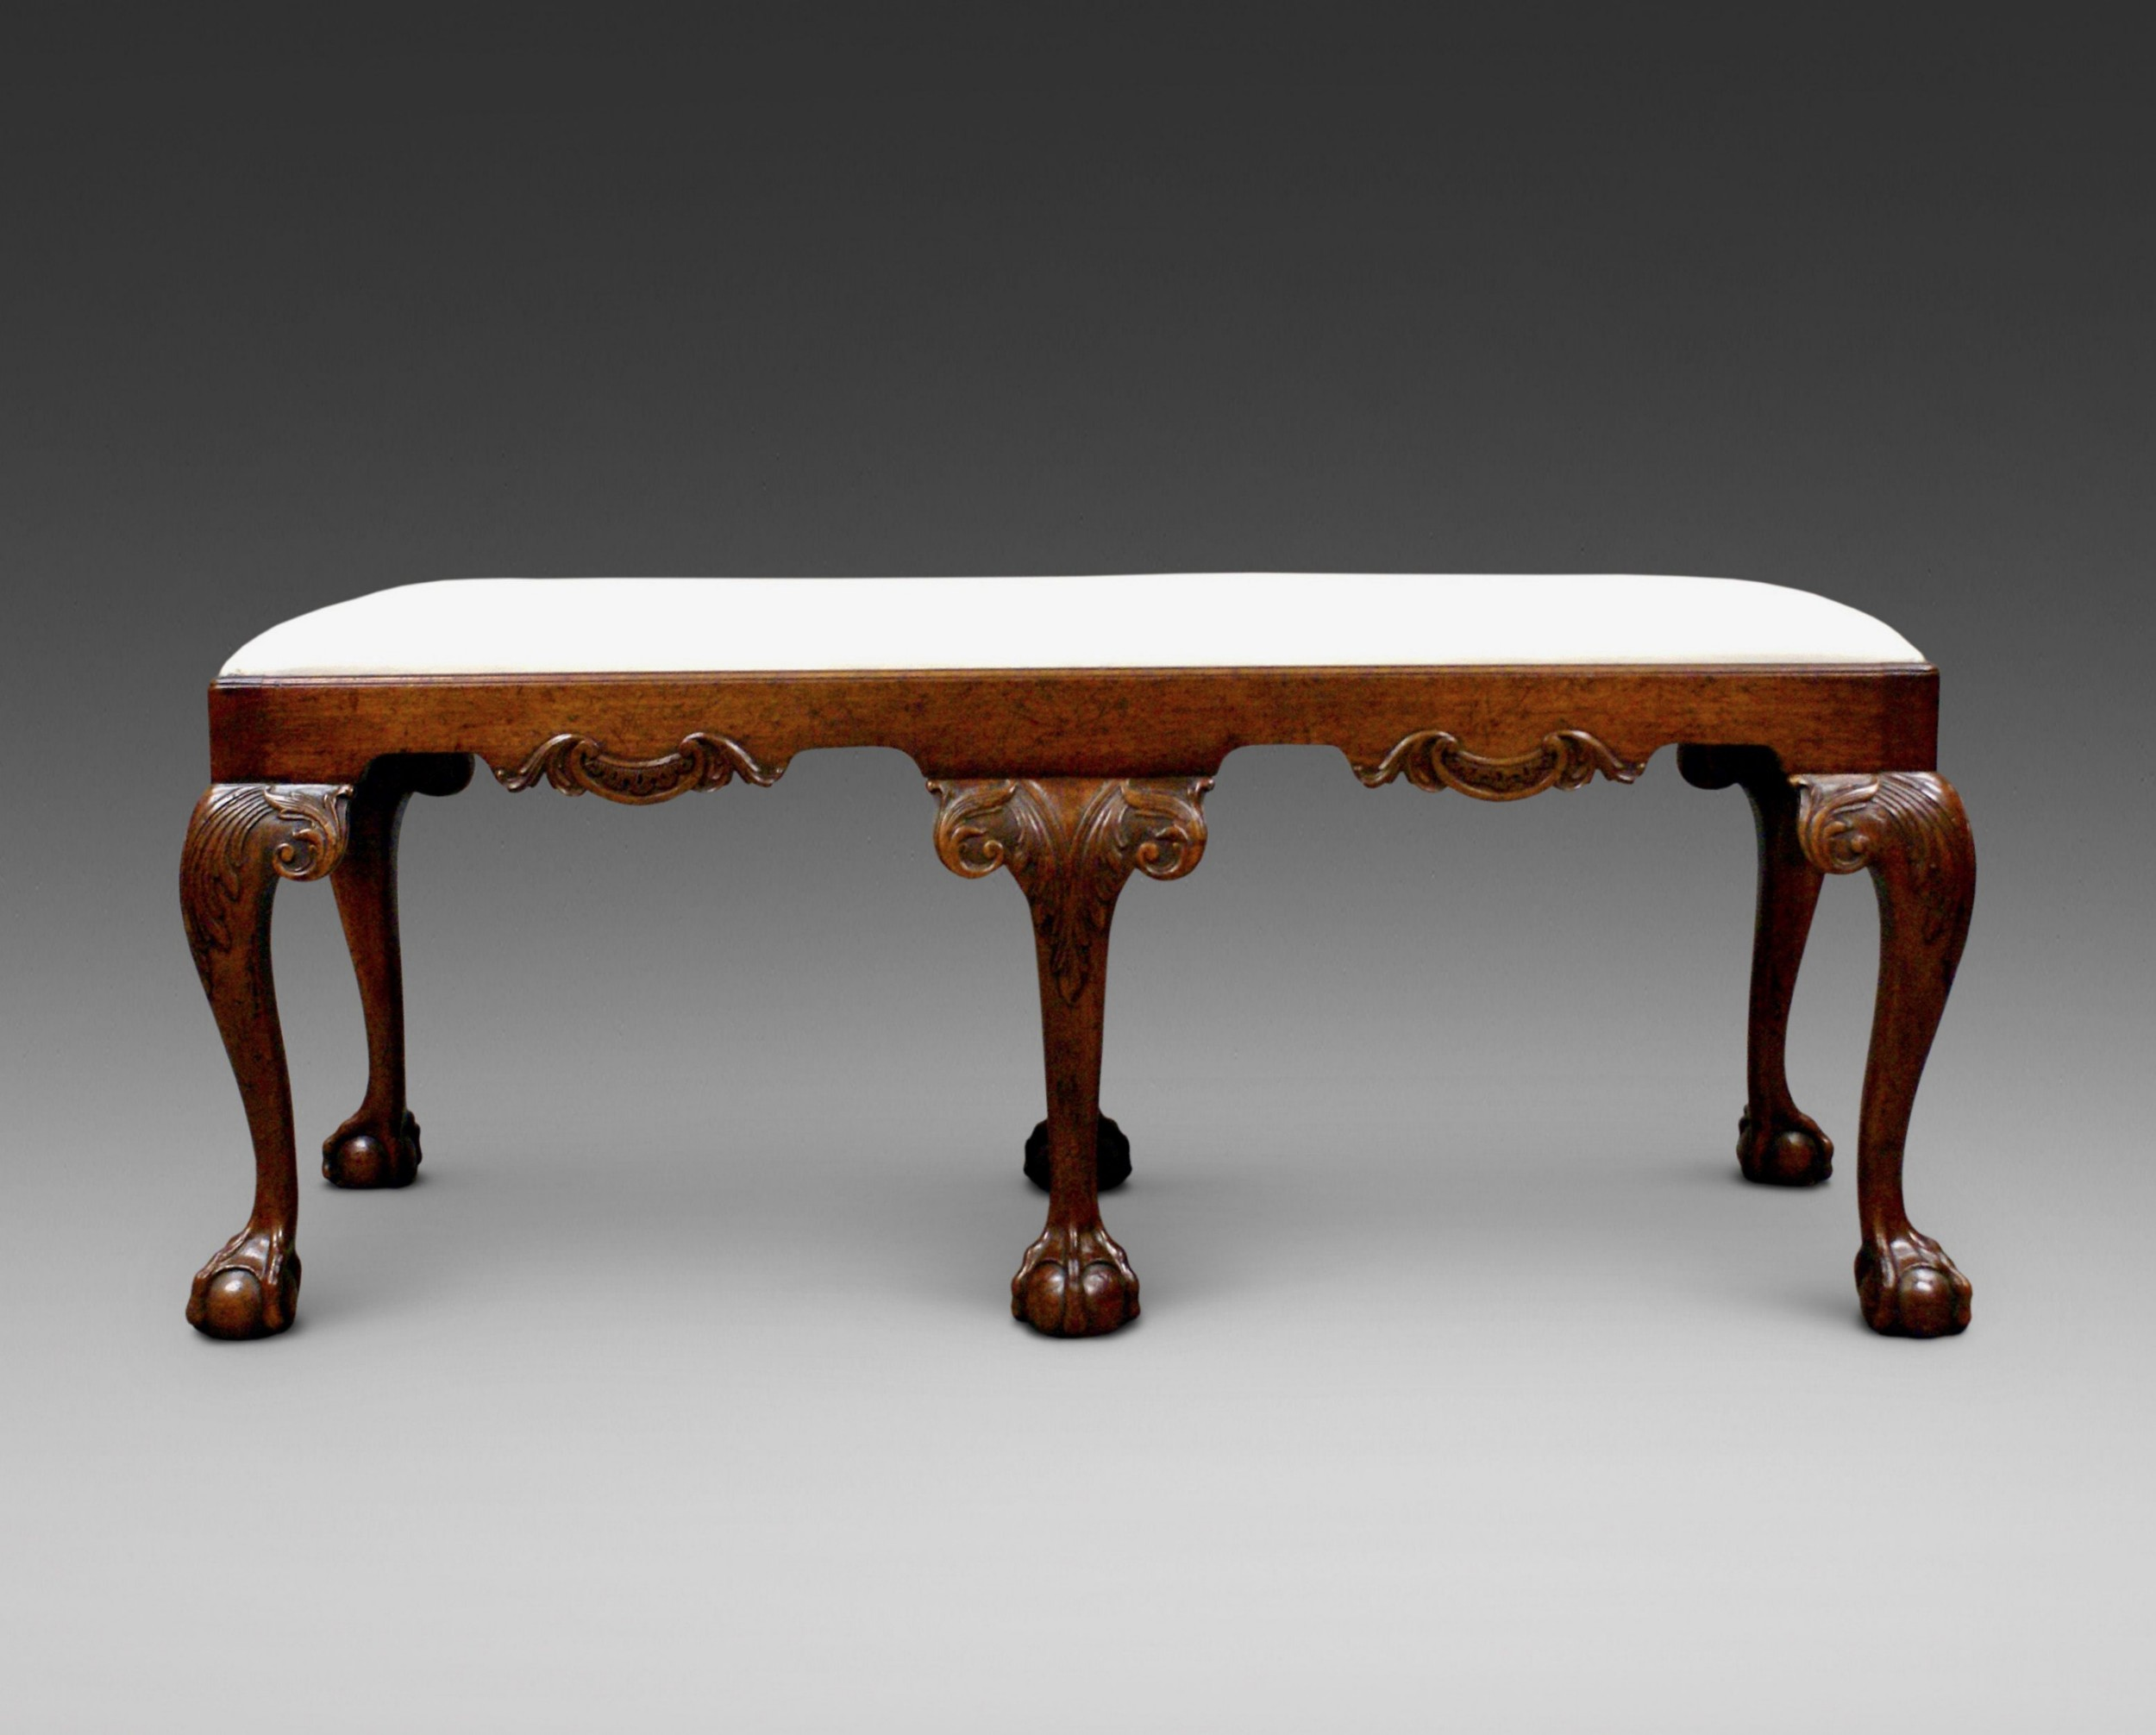 a late 19thc george ii style stool